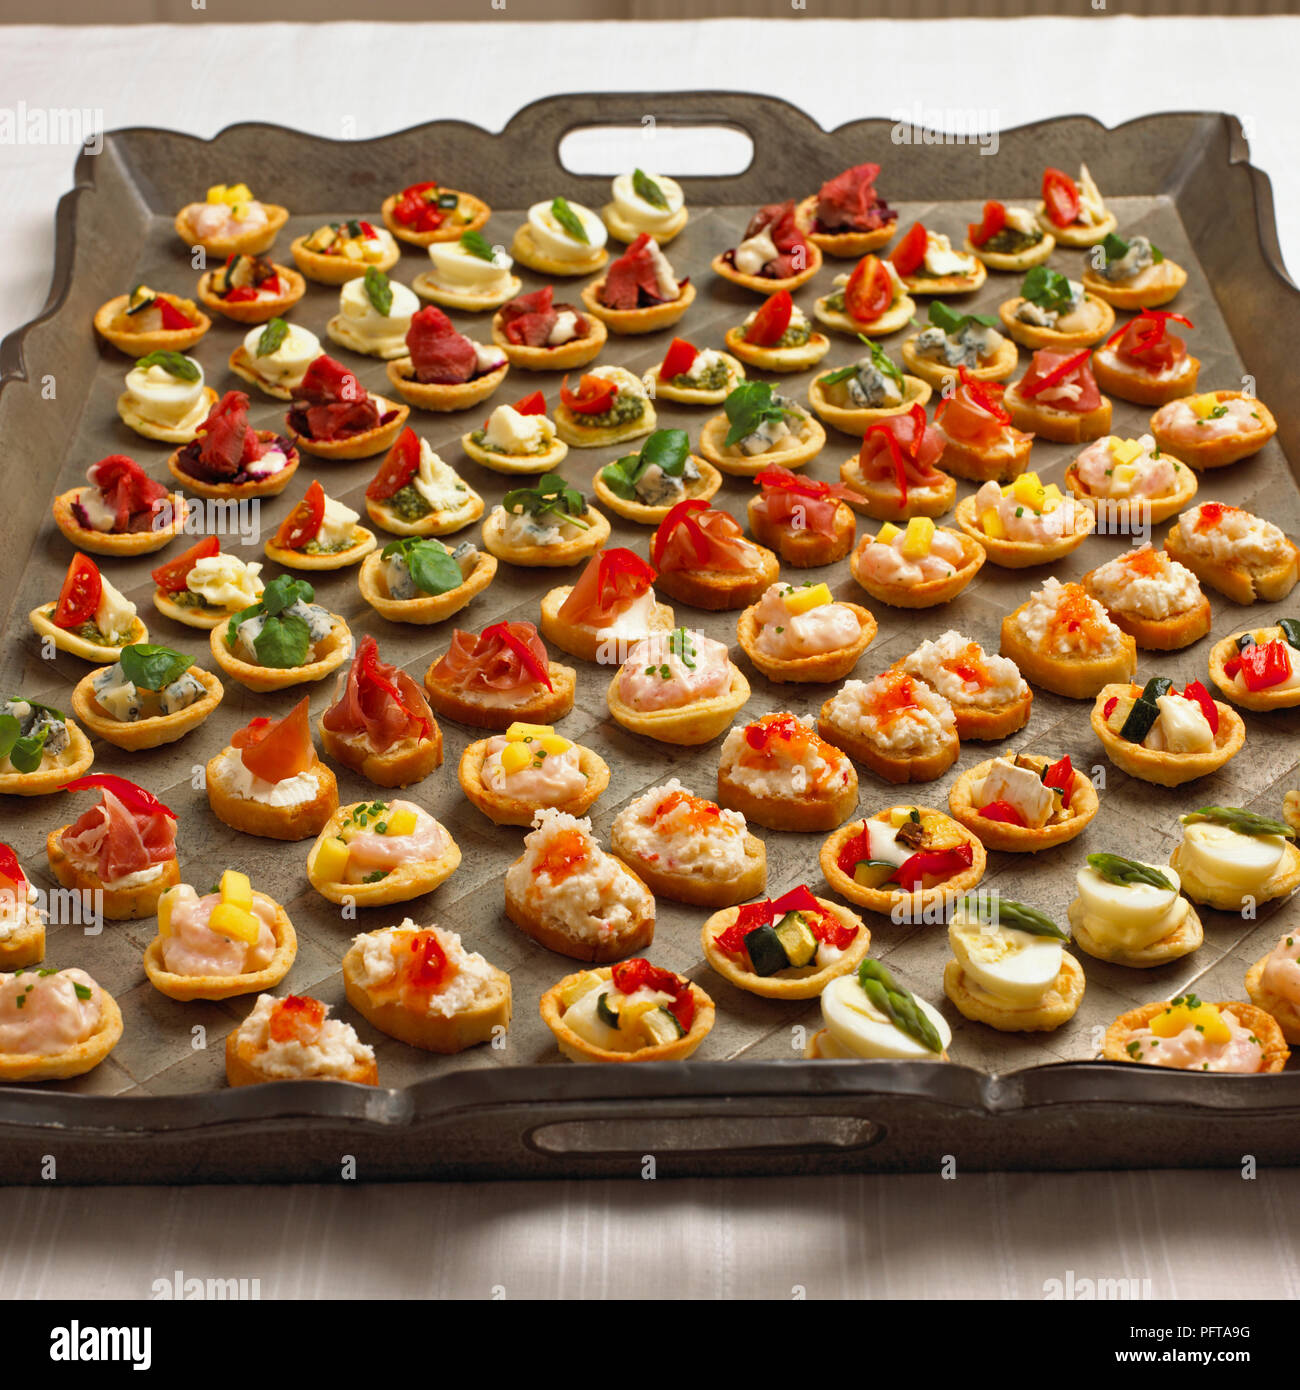 Party platter, canapes - Stock Image